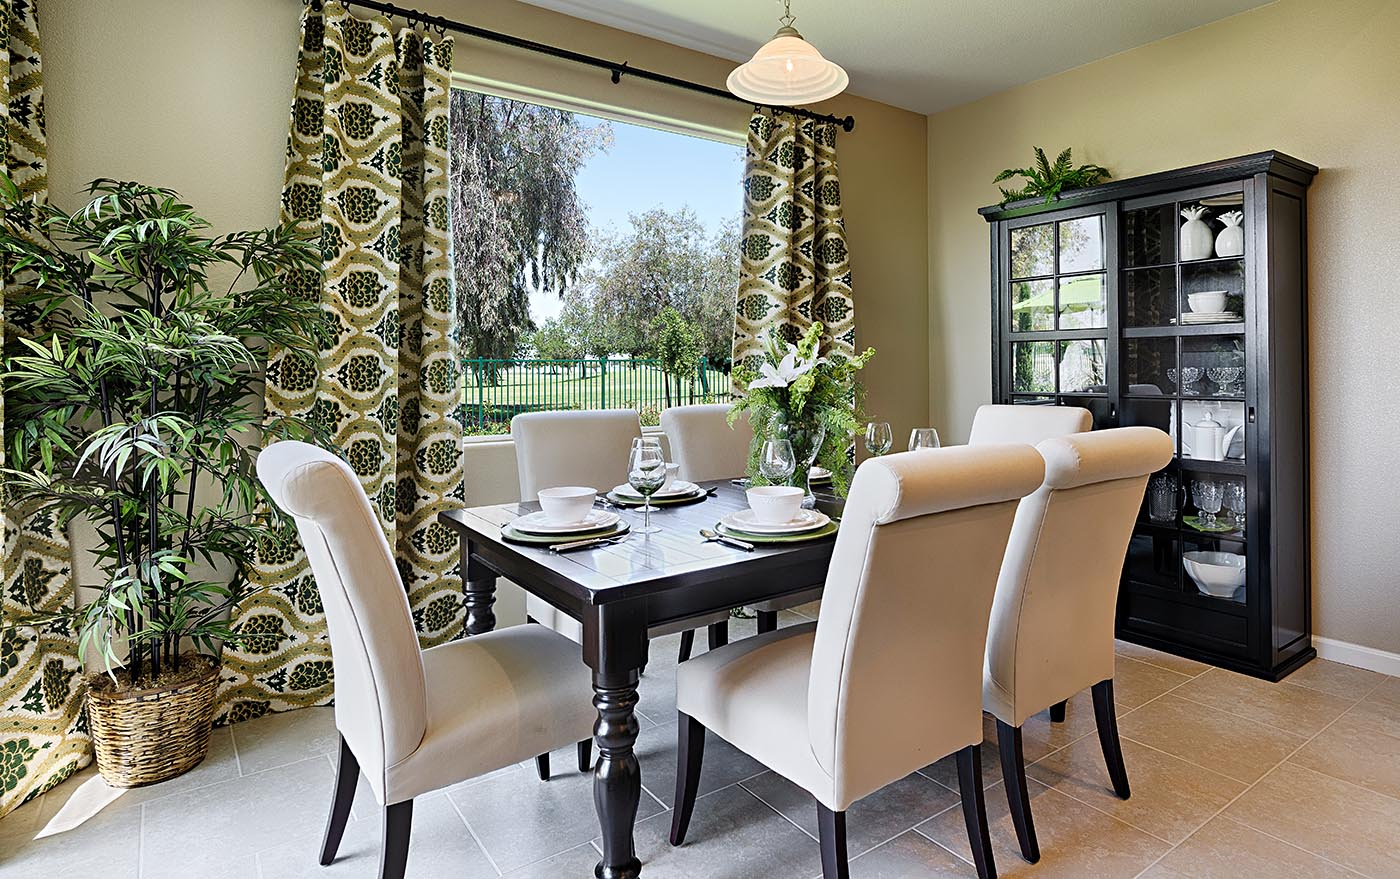 Augusta dining nook oakmont at the greens hanford dzzzfo